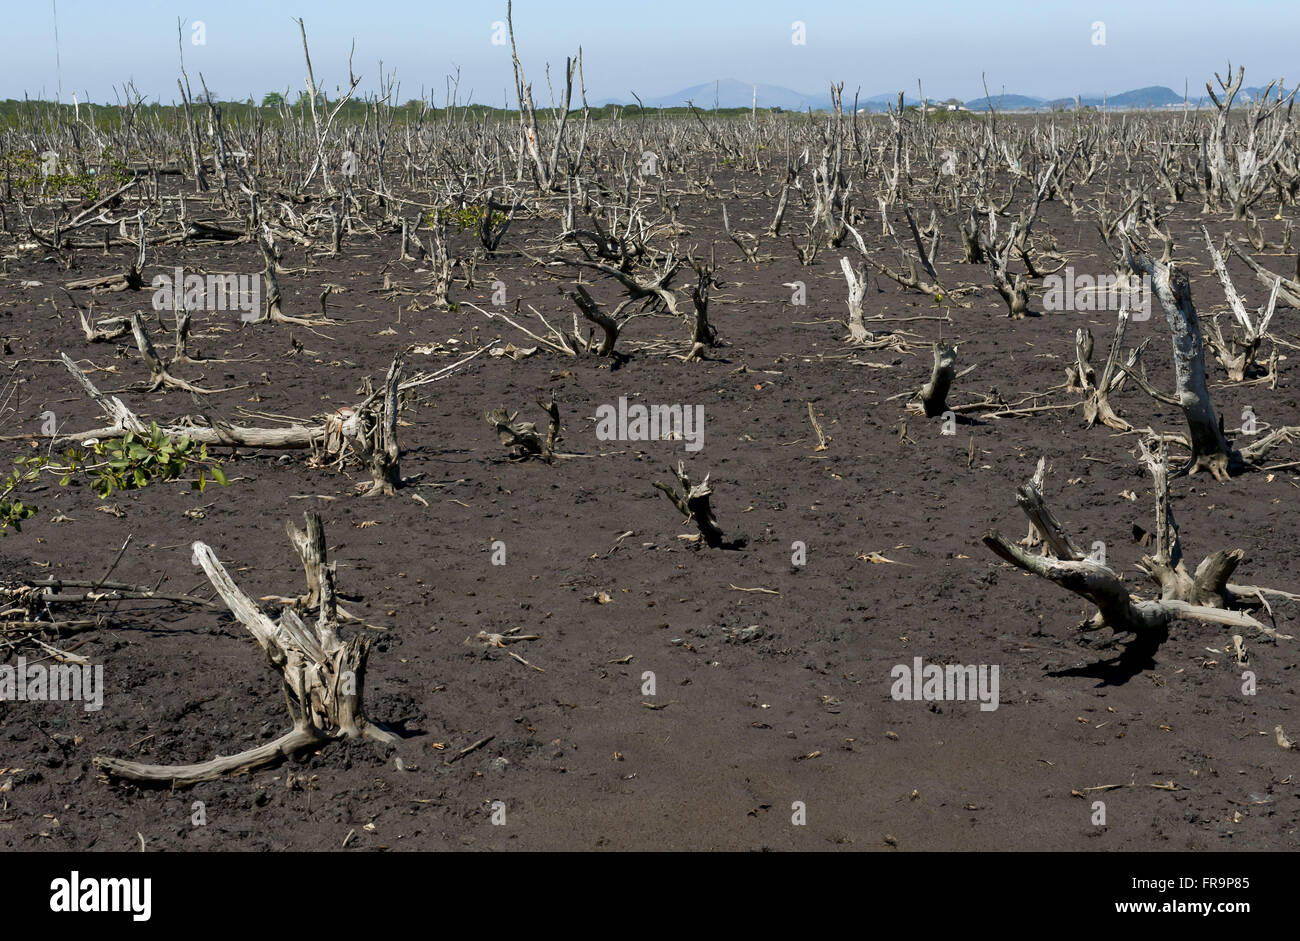 Draft recovery and conservation of mangroves of Guanabara Bay on Mage - Stock Image